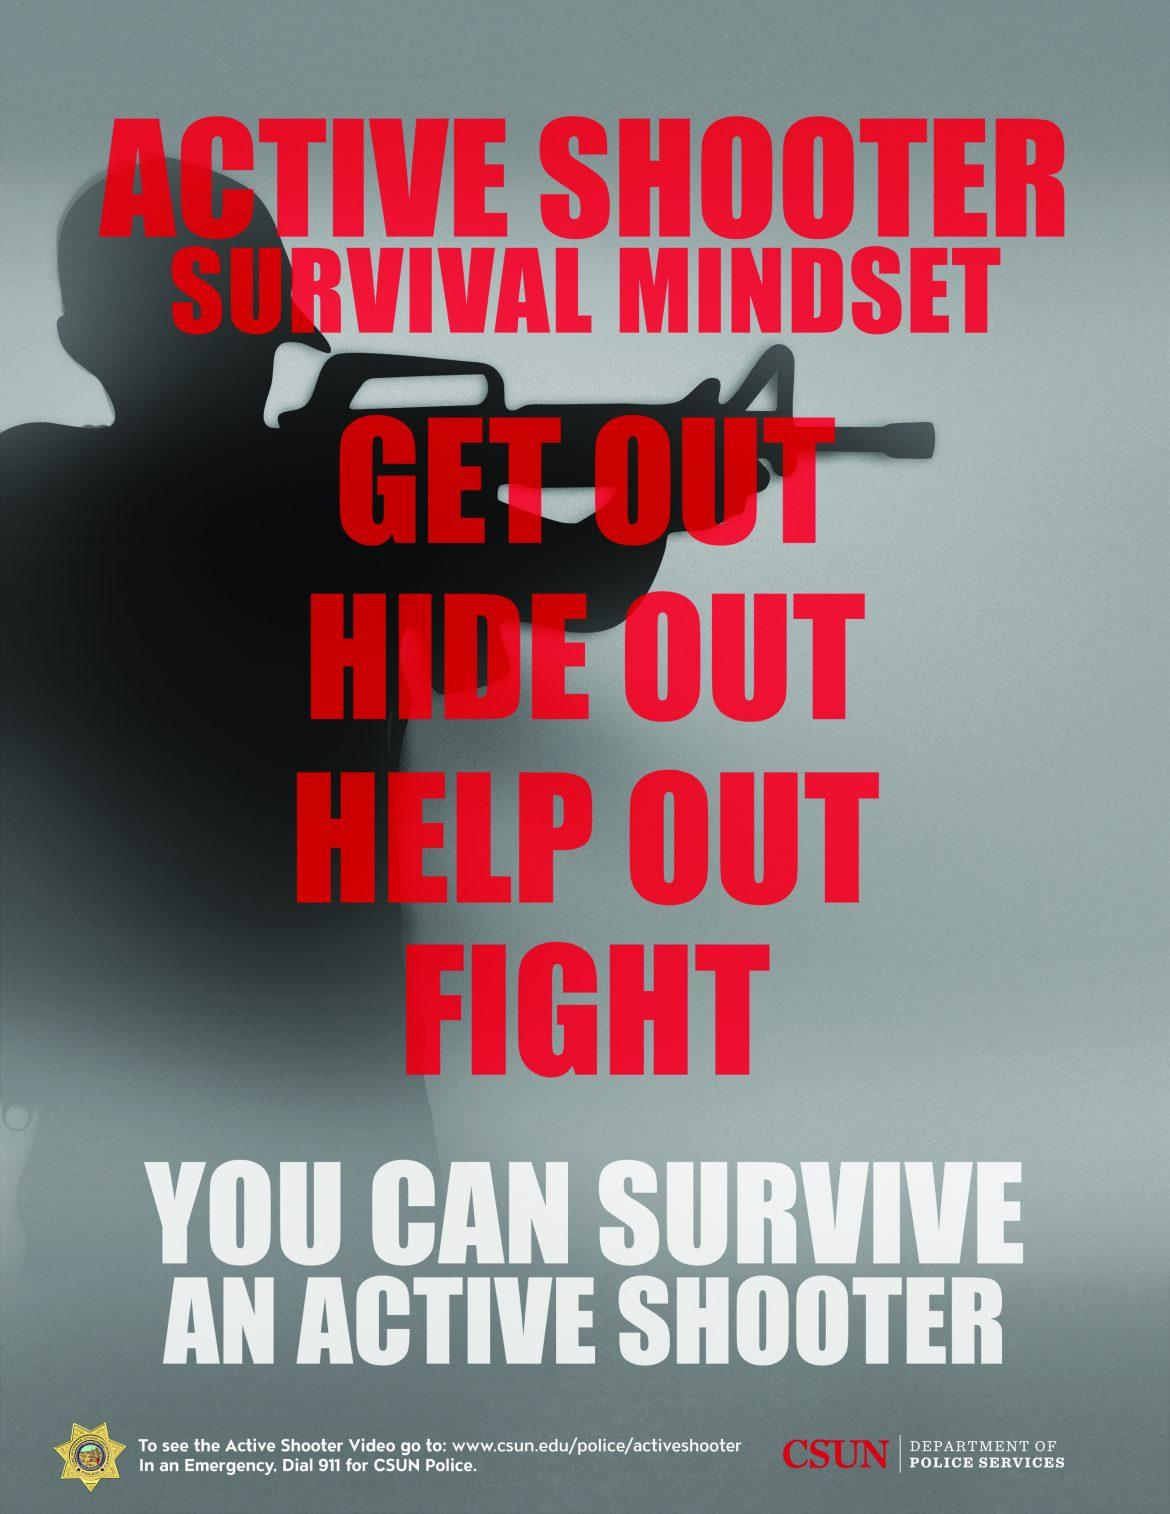 Poster reading pointers on how to survive and active shooter